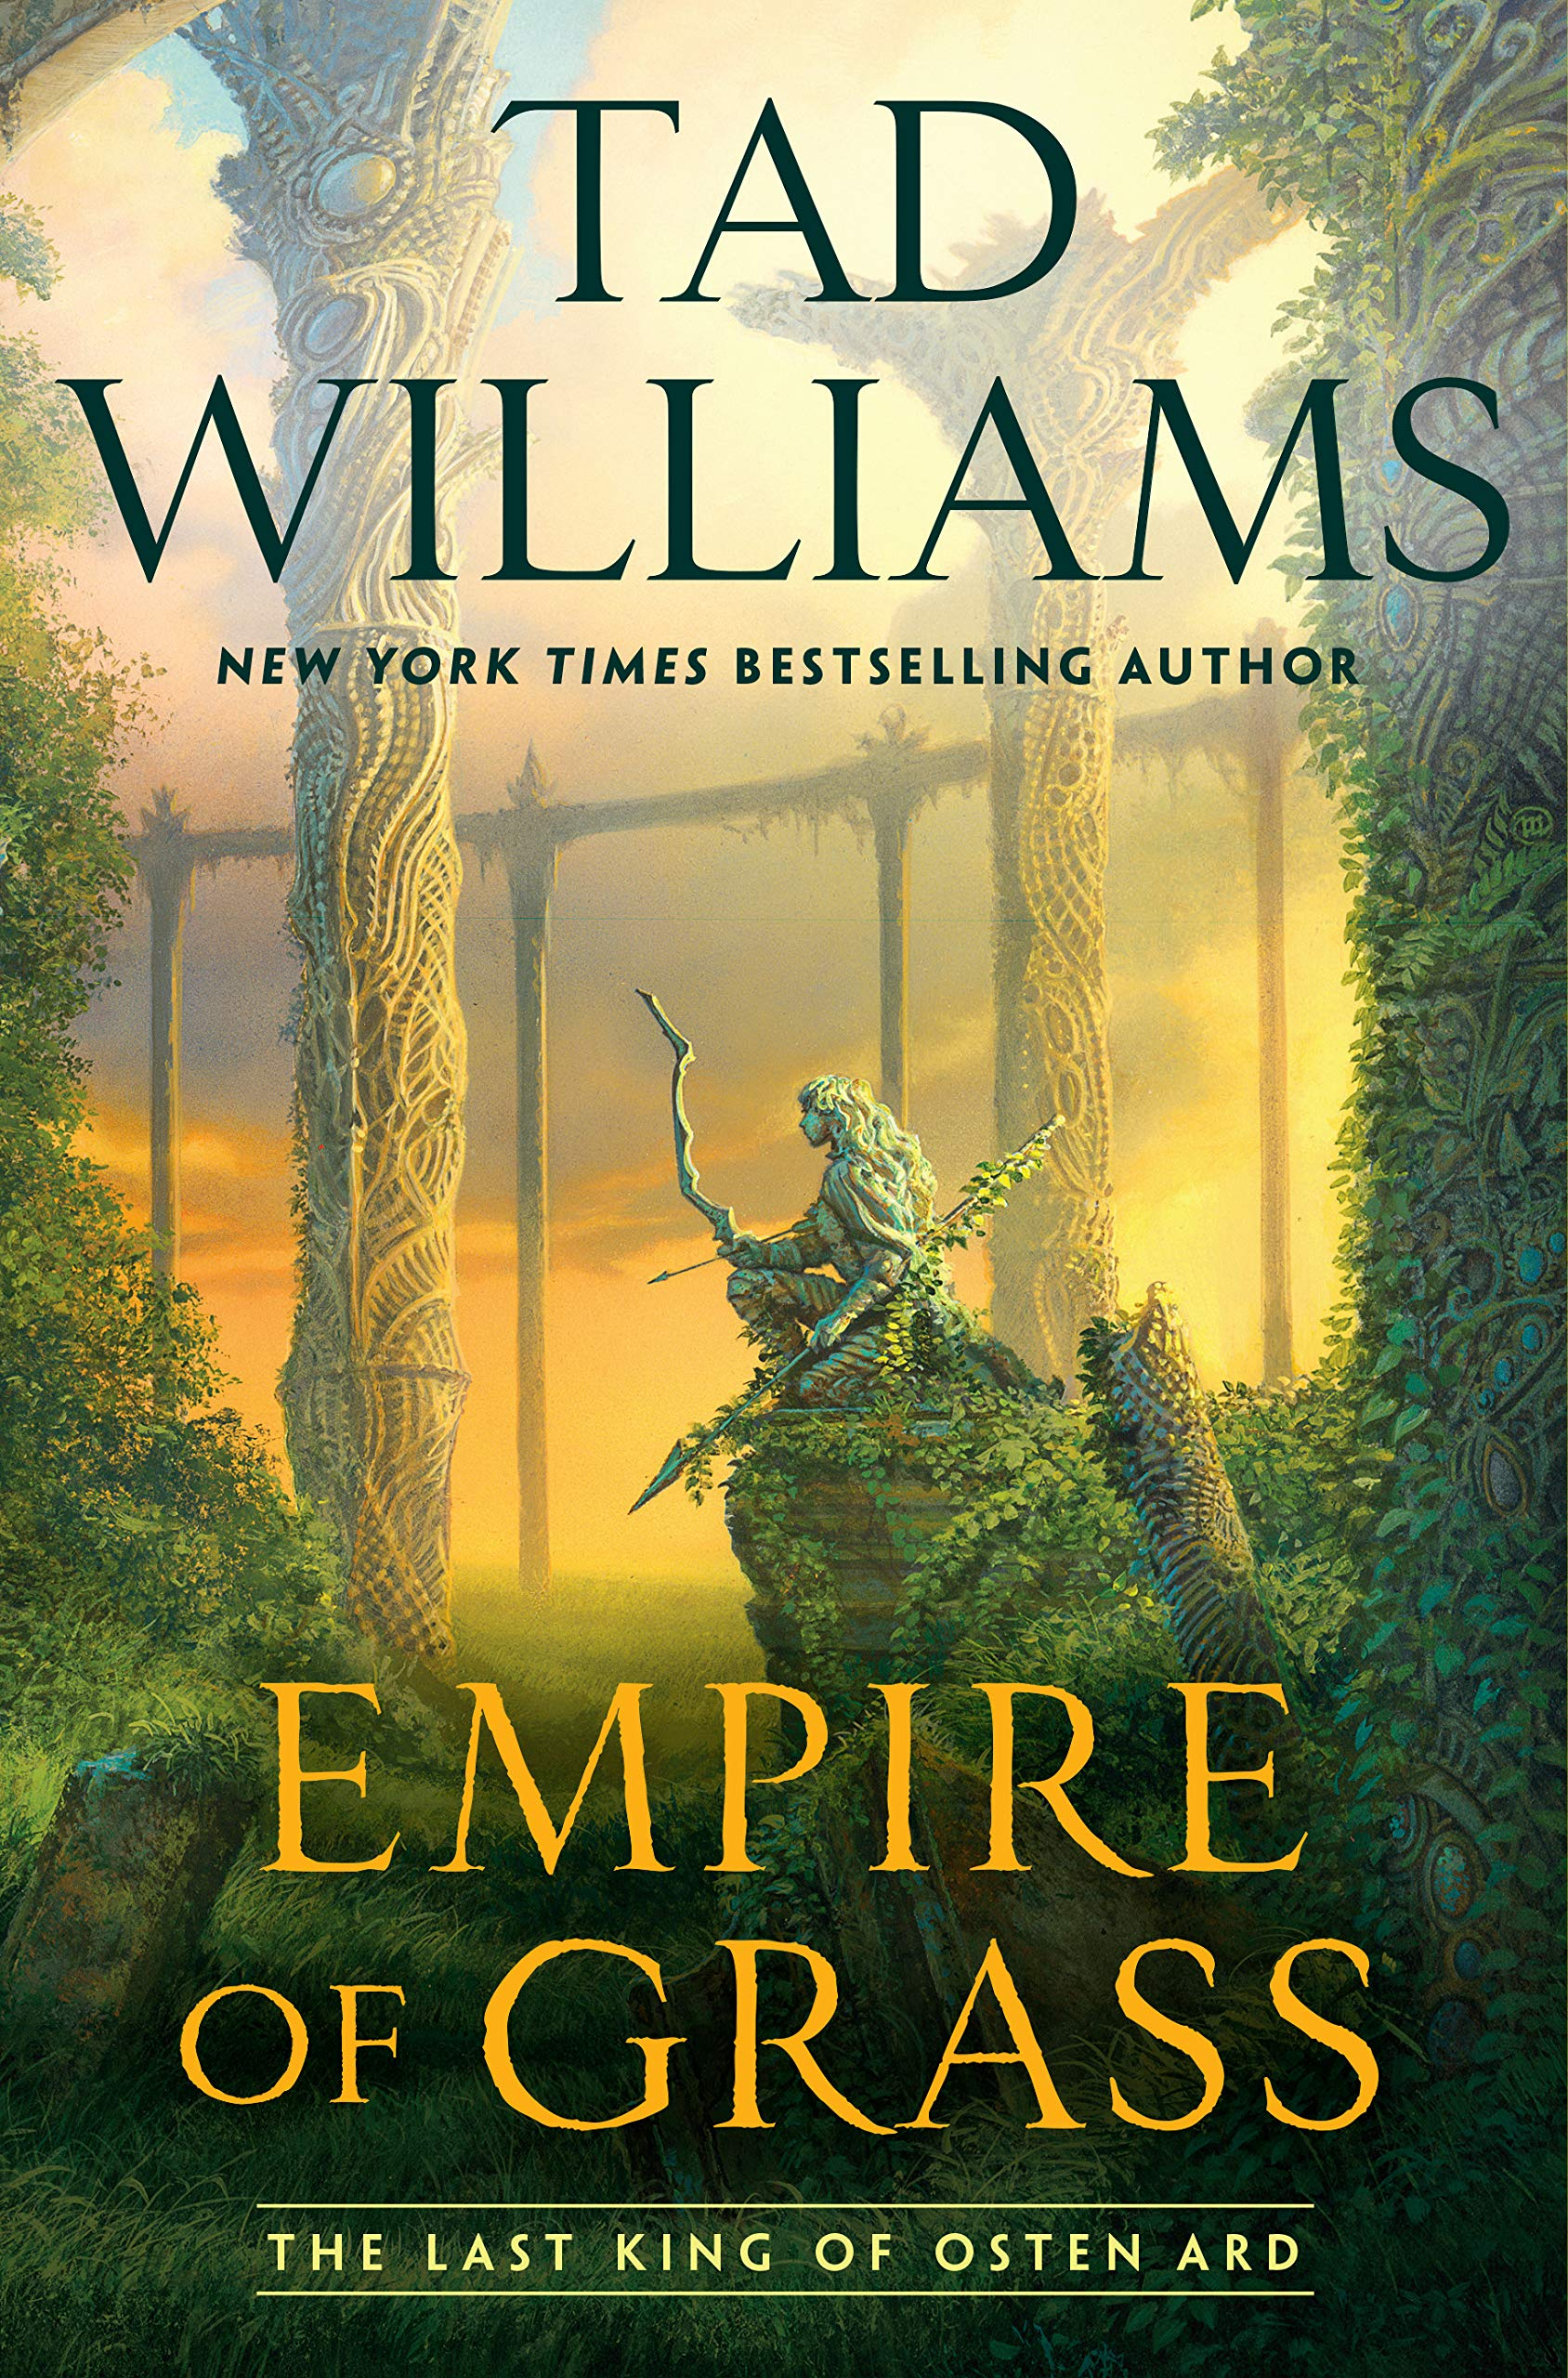 EMPIRE OF GRASS - Tad Williams - US Cover.jpg